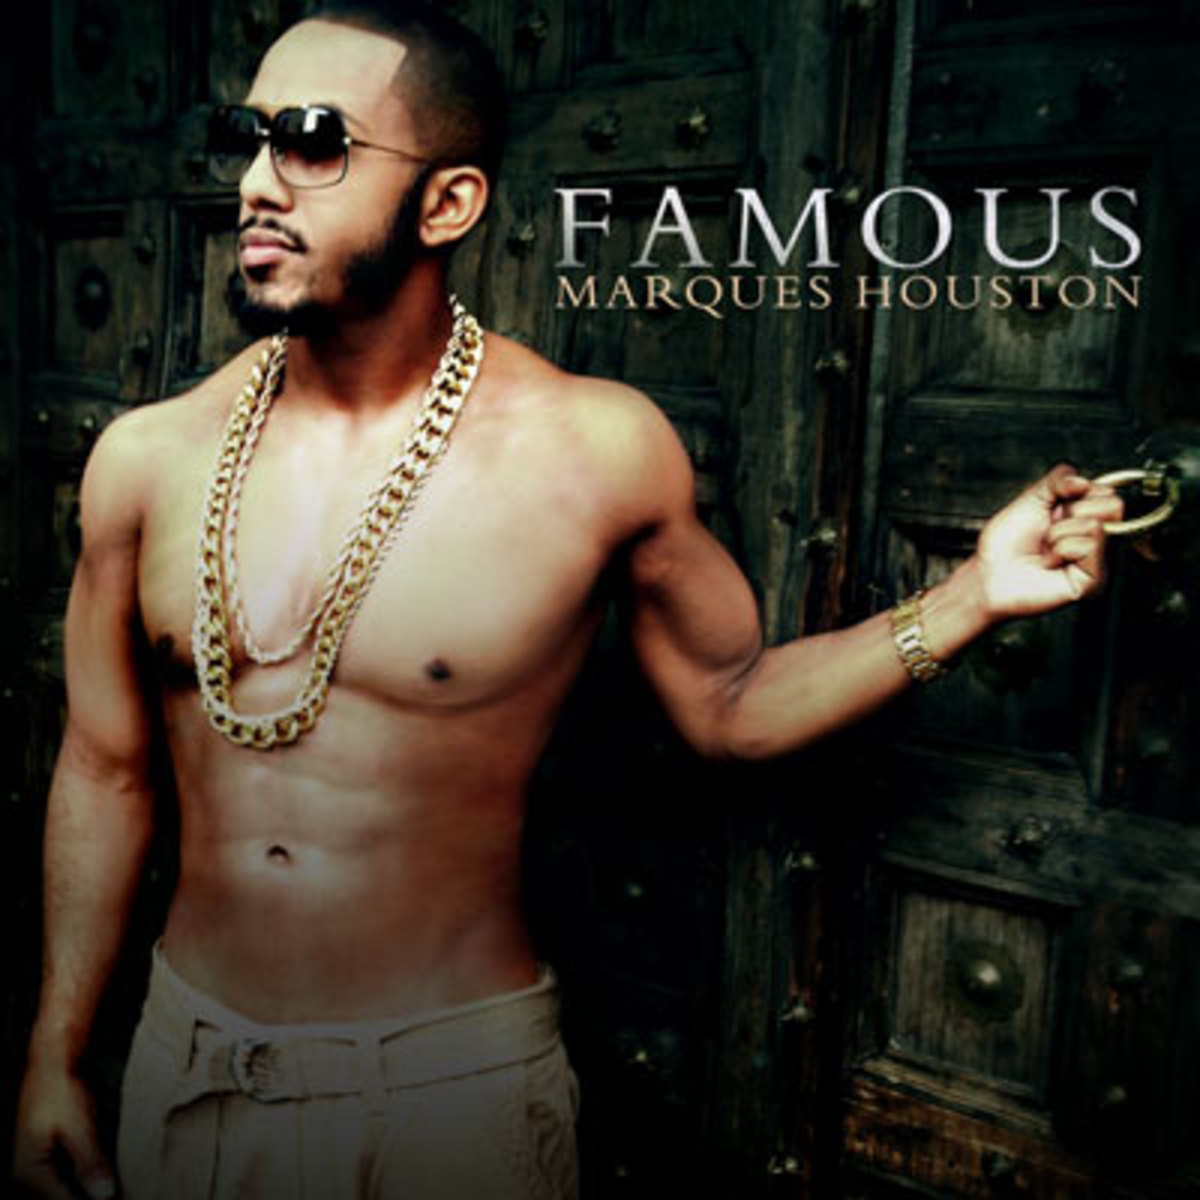 marqueshouston-famous.jpg